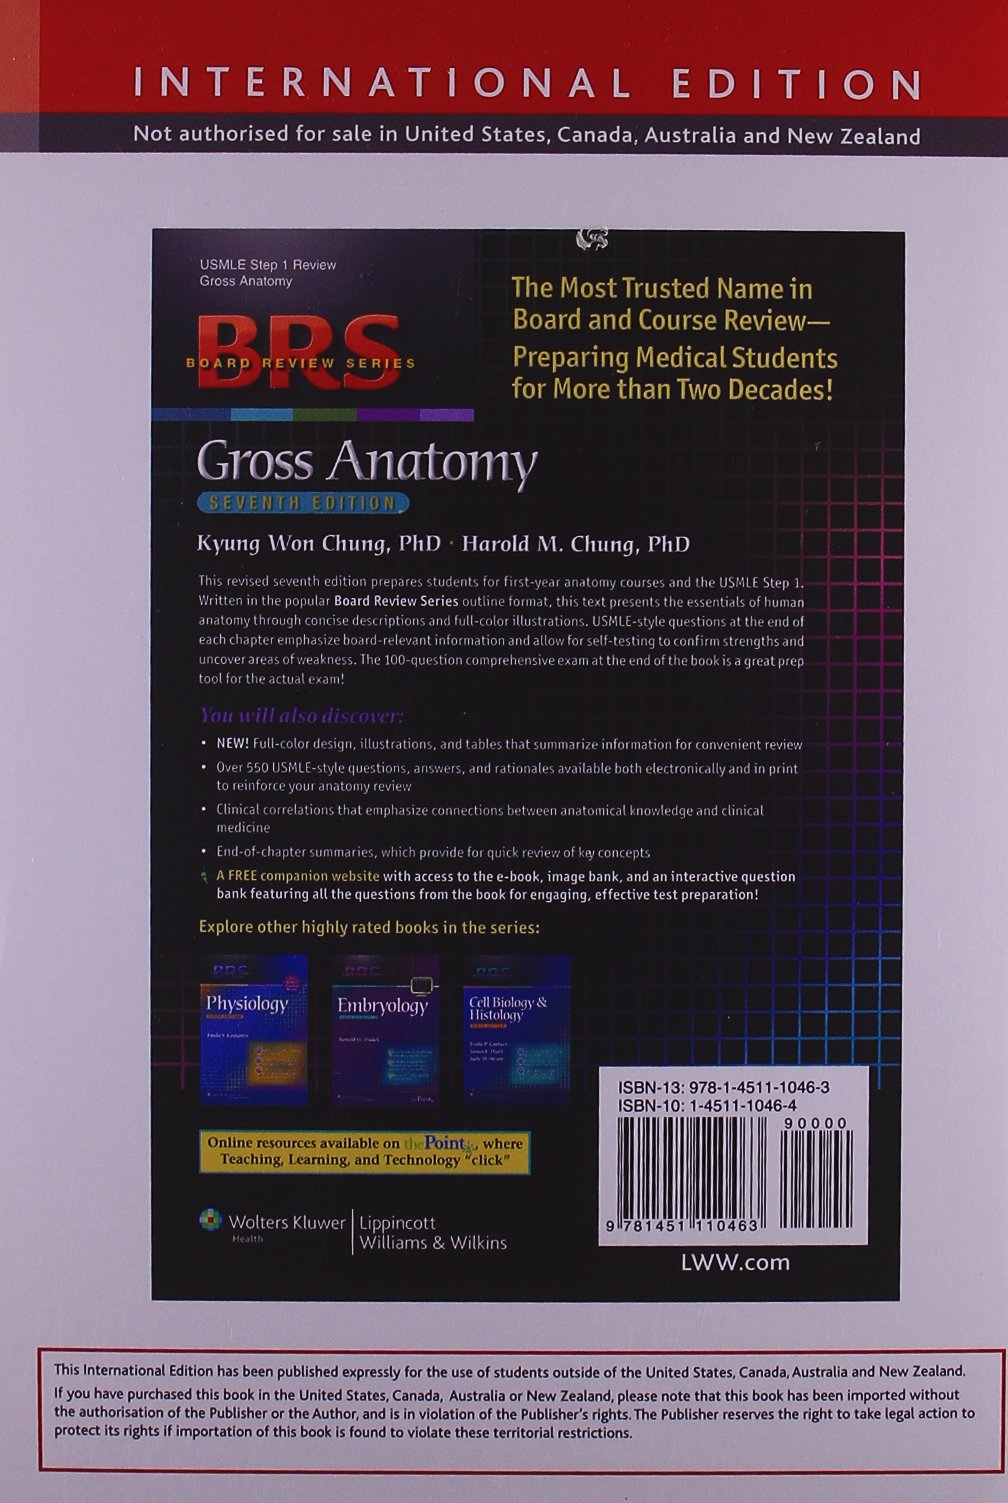 Brs Gross Anatomy Board Review Series Amazon Kyung Won